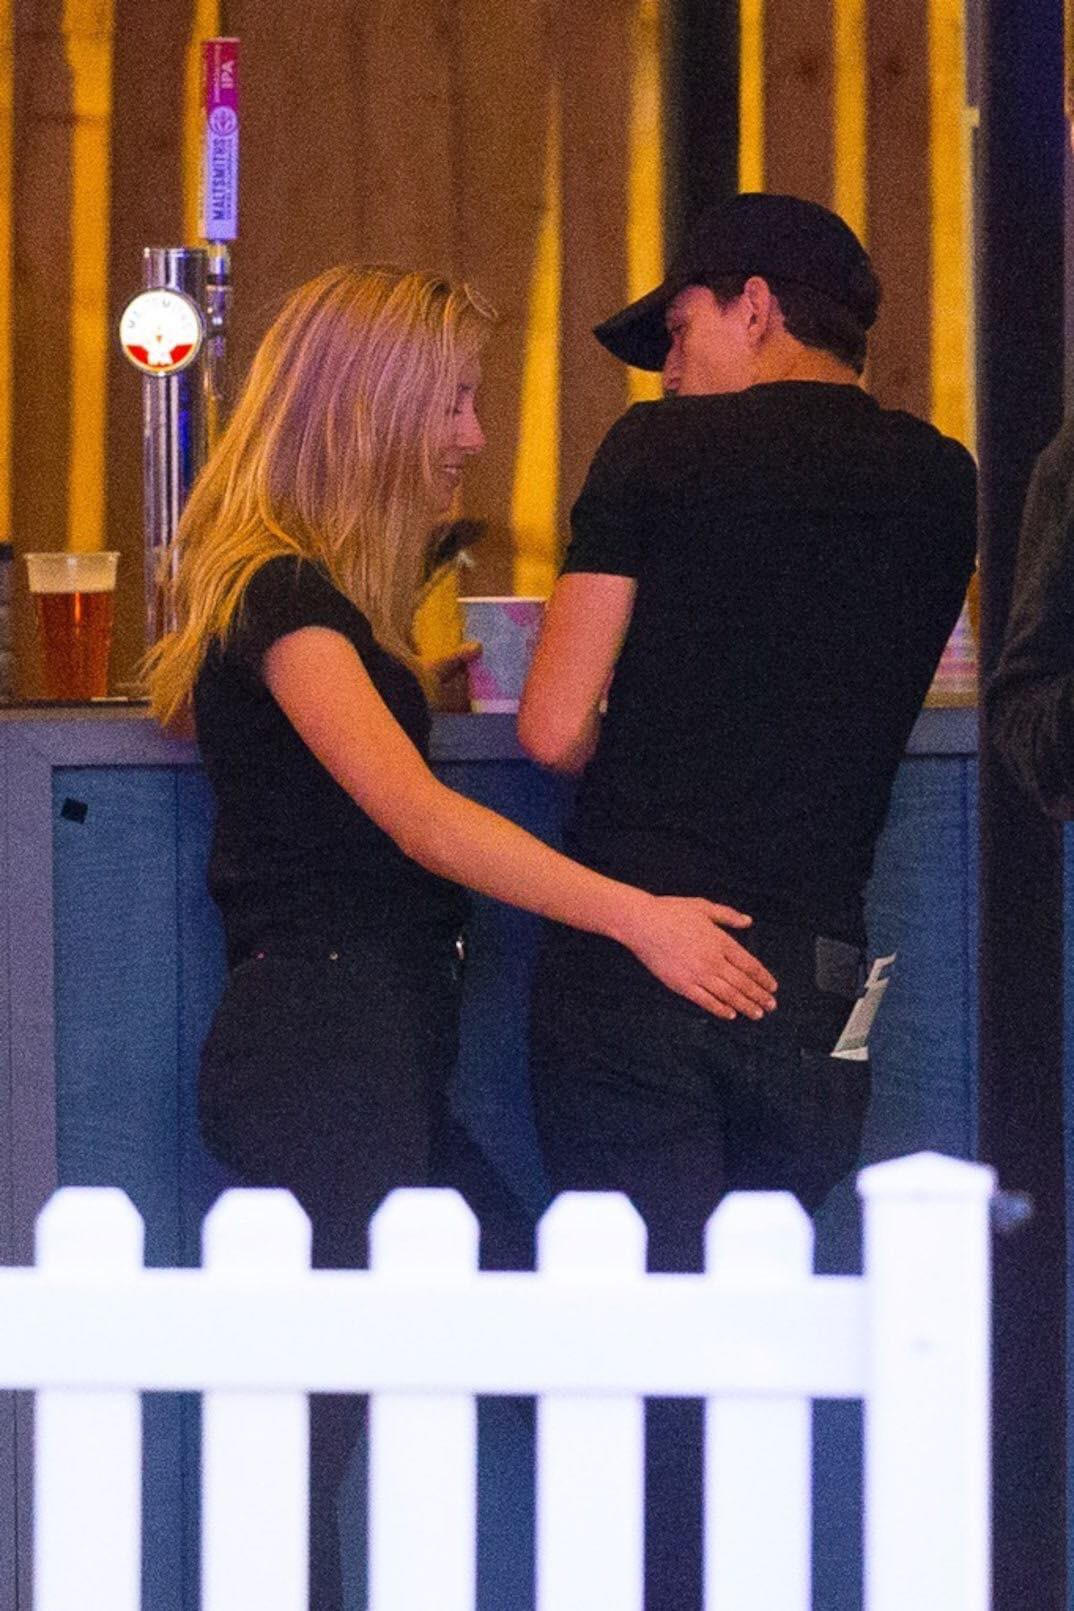 Spider-Man Tom Holland was caught in close contact with strange girls, but why are two younger older people different from their mothers? - Picture 2.